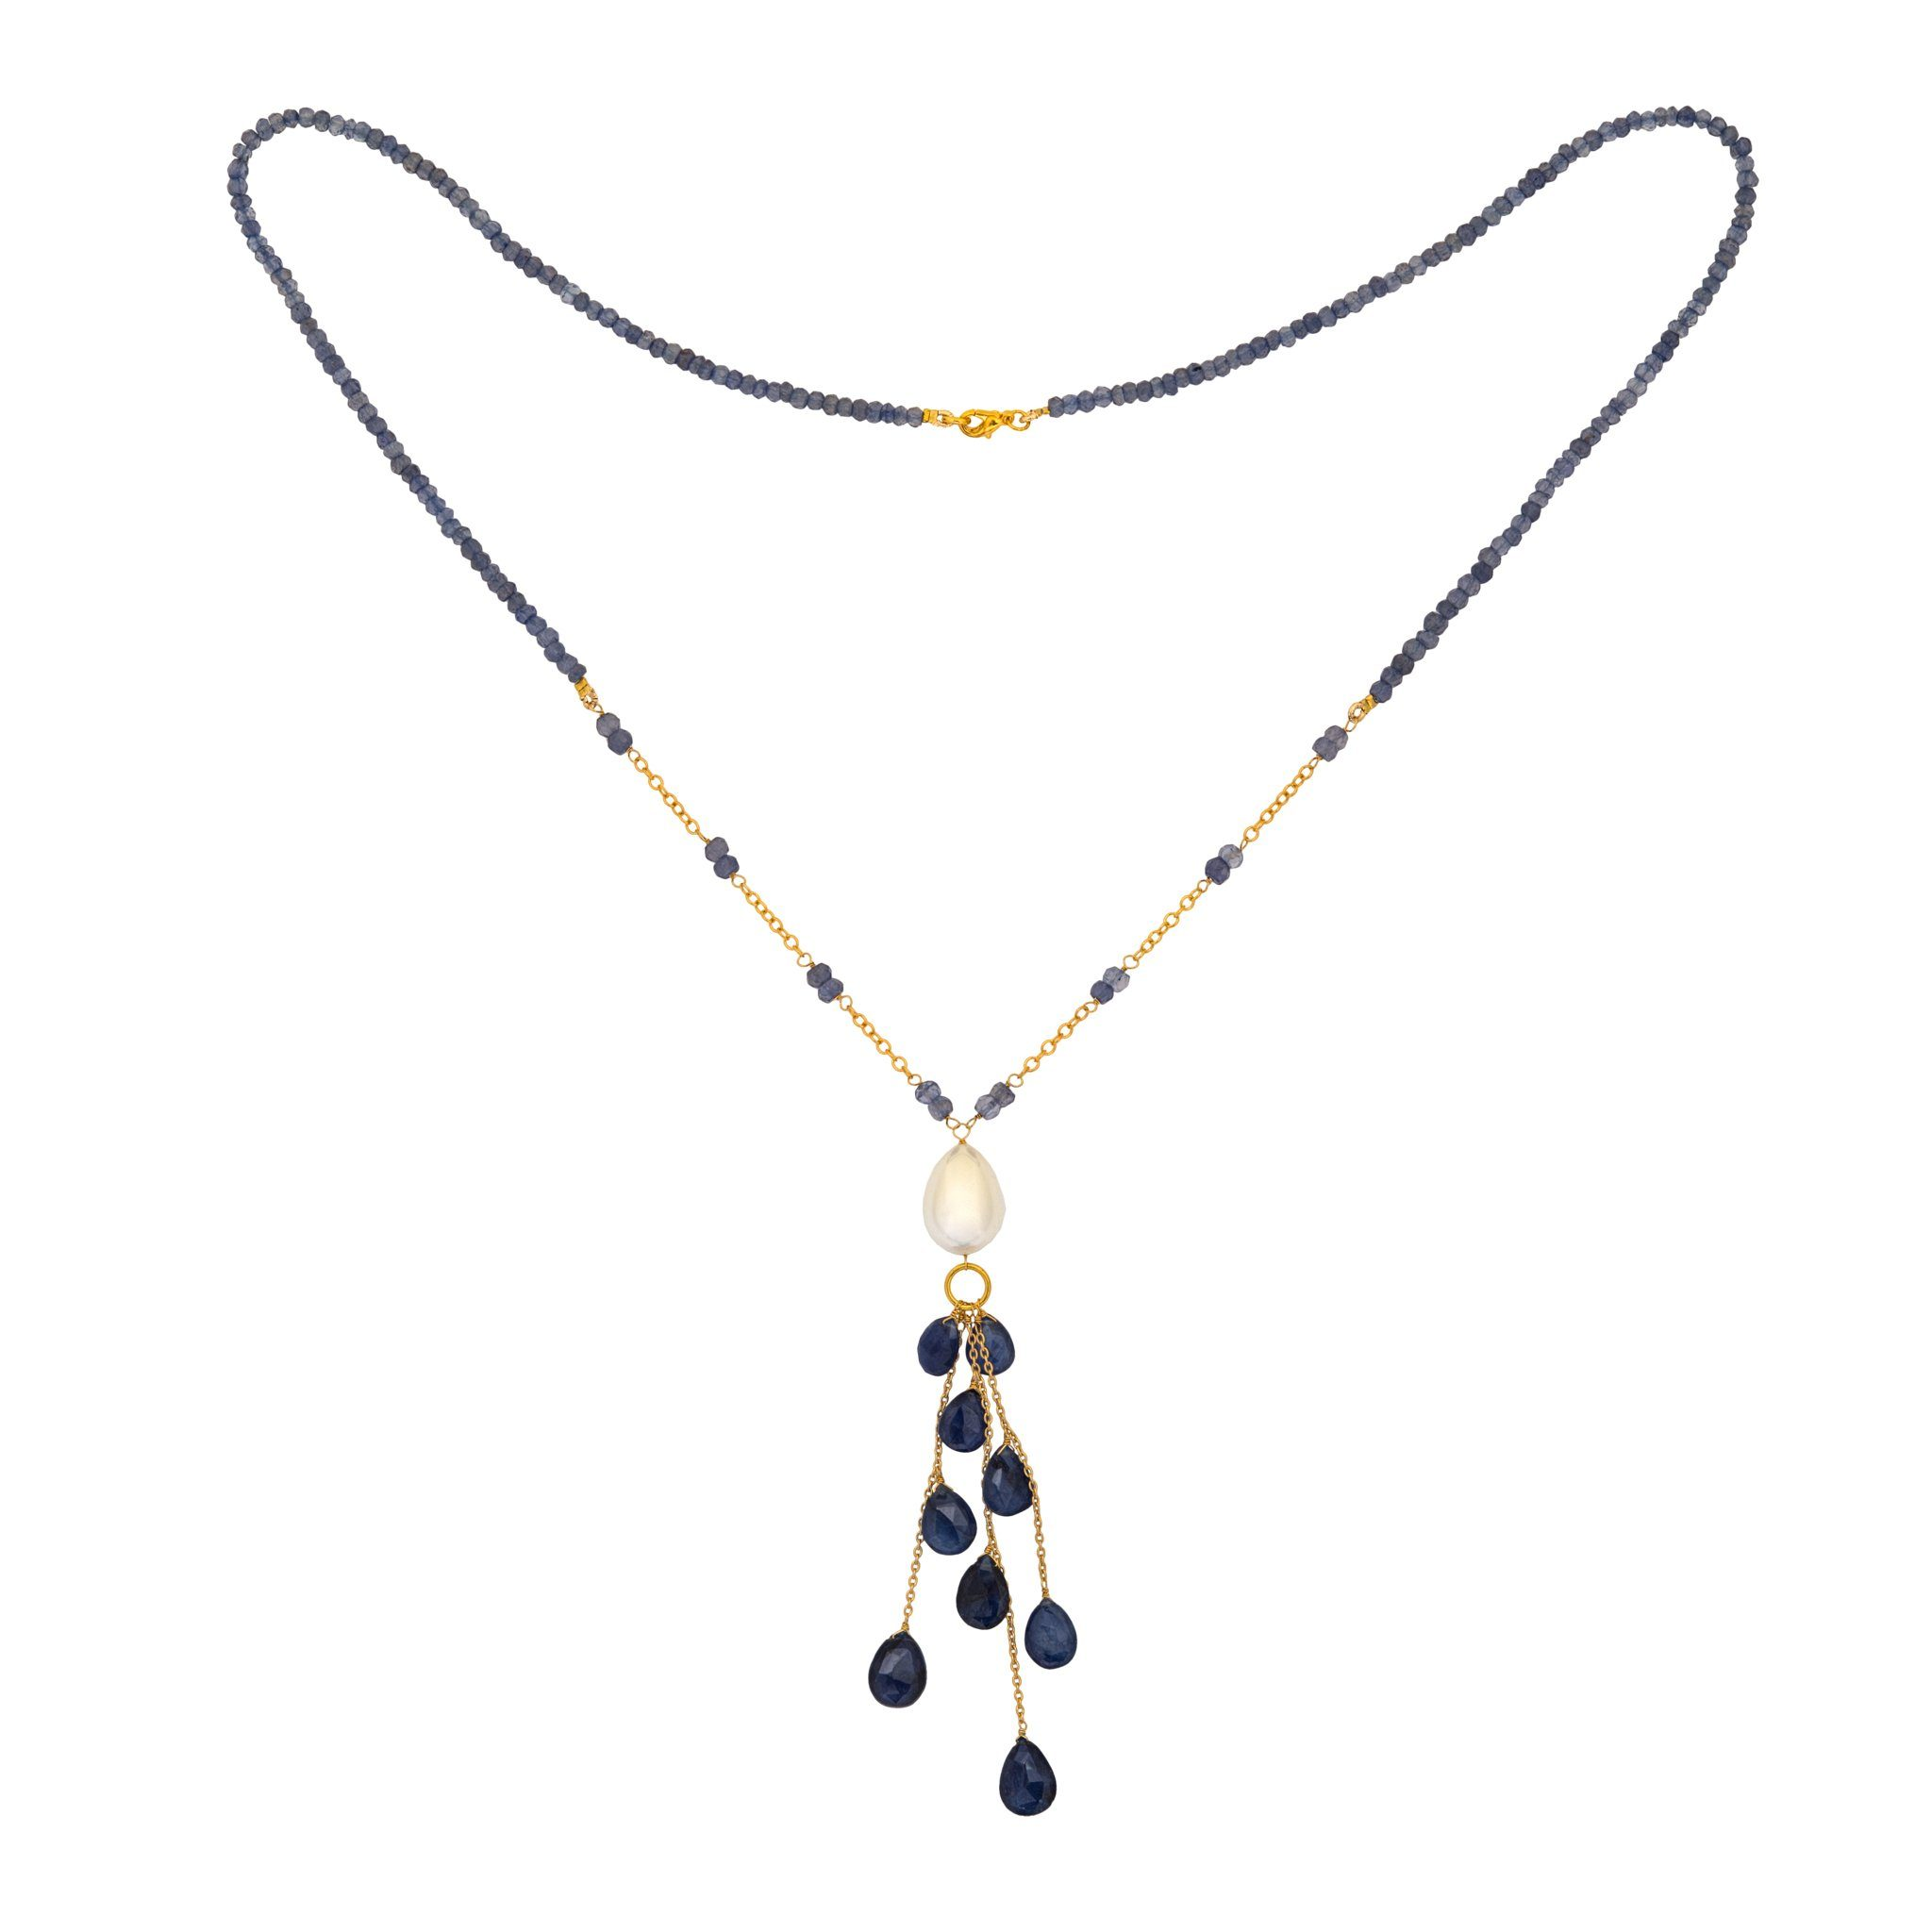 COCO pearl and iolite necklace with drops - MadamSiam